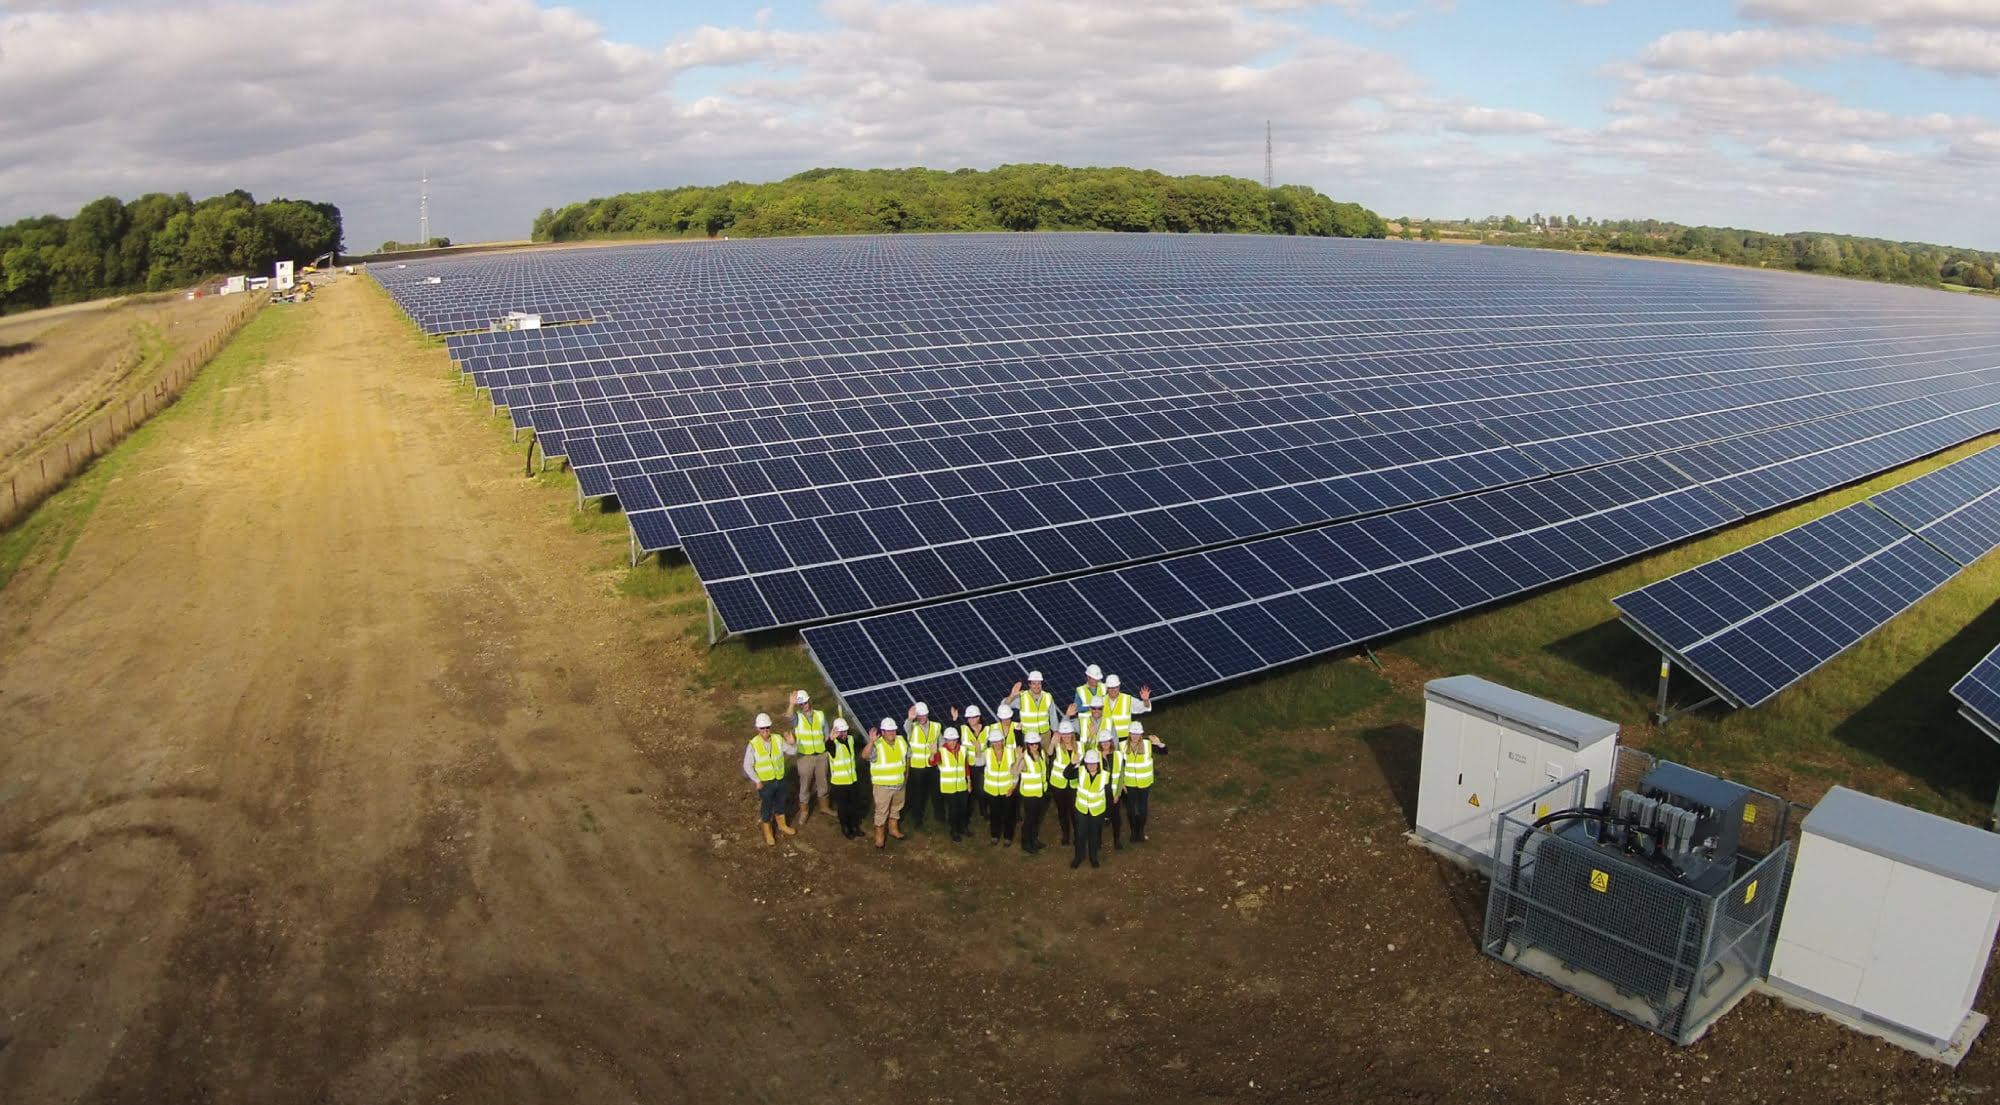 PROINSO's constructors and solar panels on a field